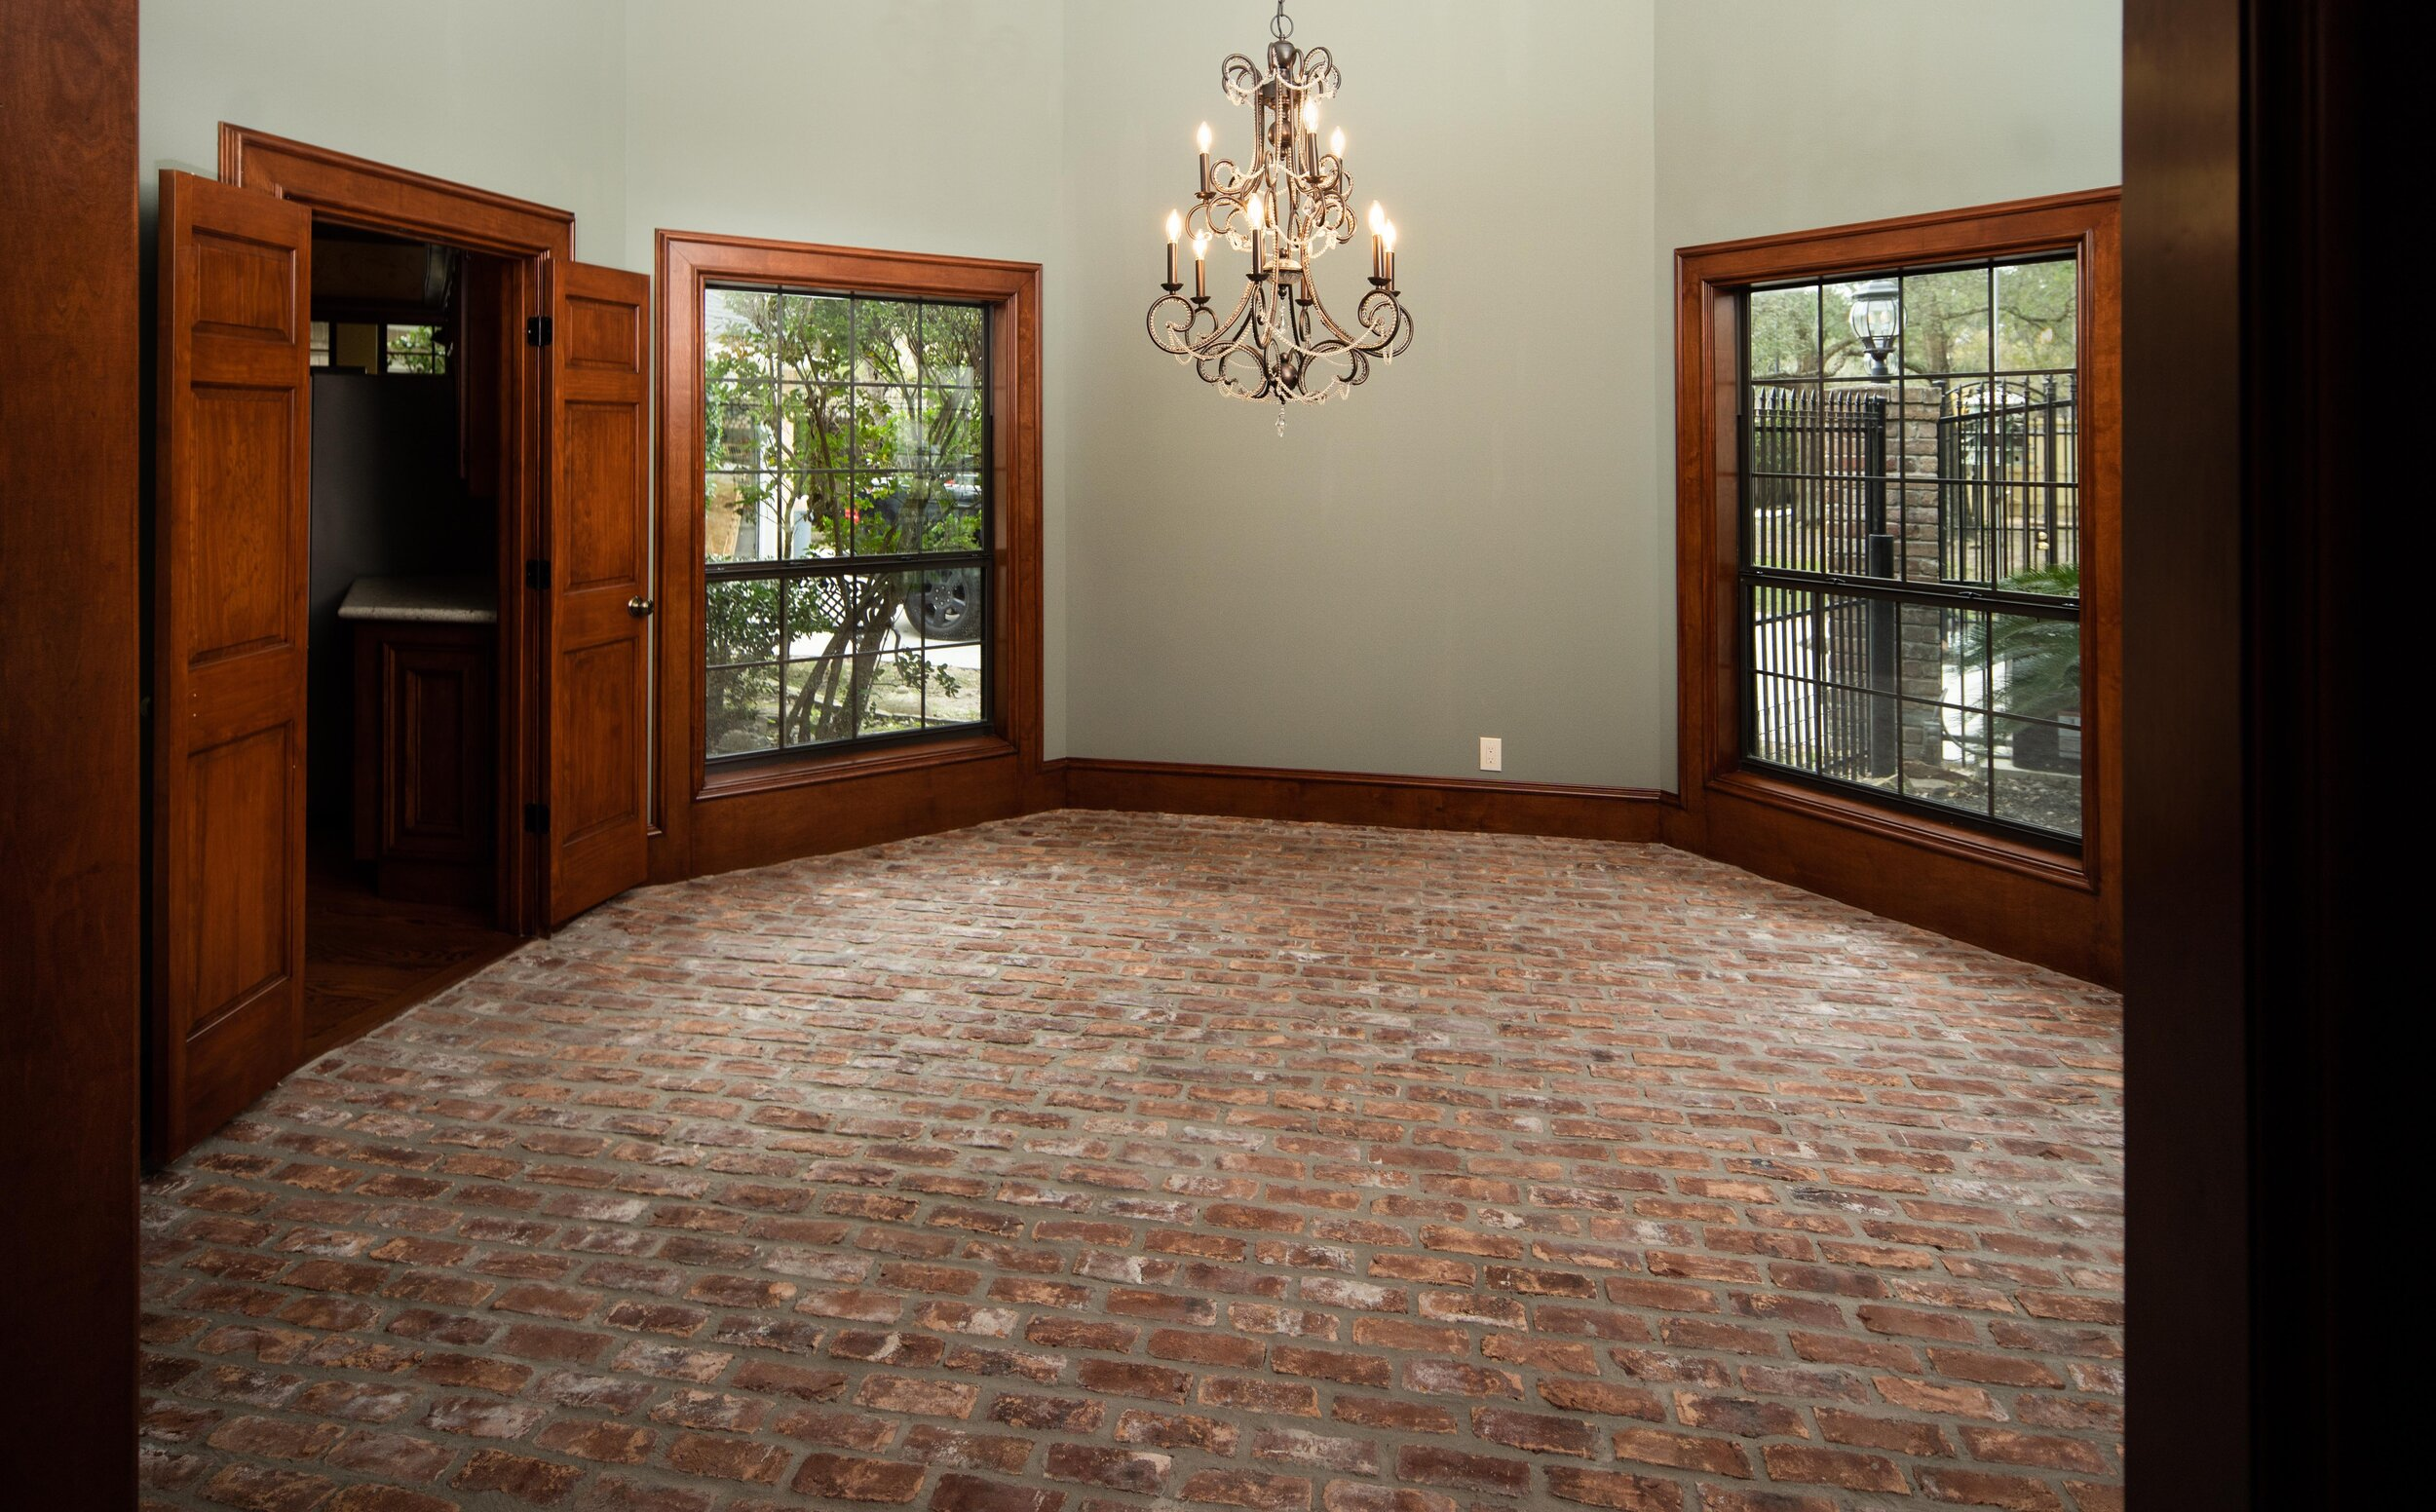 Full home restoration. Full home renovation. Wood stained trim and doors, new paint, chandelier, rustic brick floor.